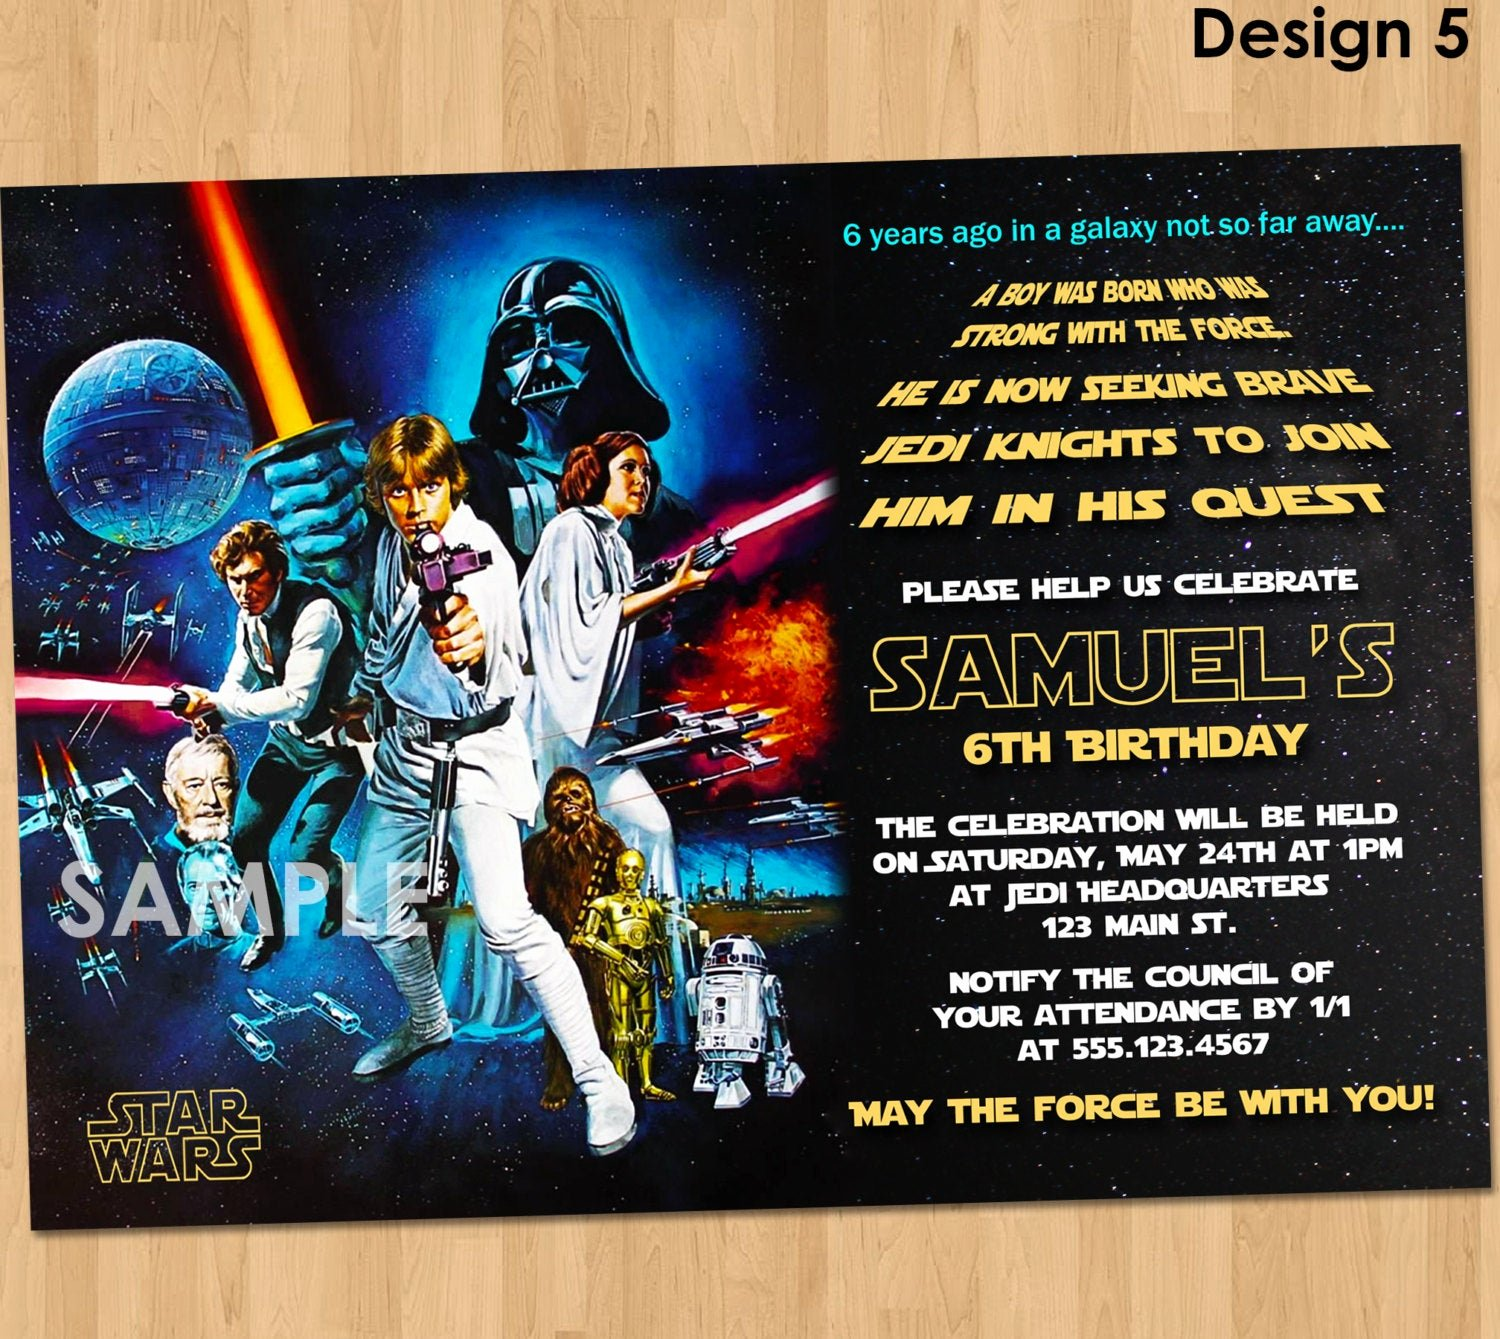 Star Wars Birthday Invitations Best Of Star Wars Birthday Invitation Star Wars Invitation Birthday